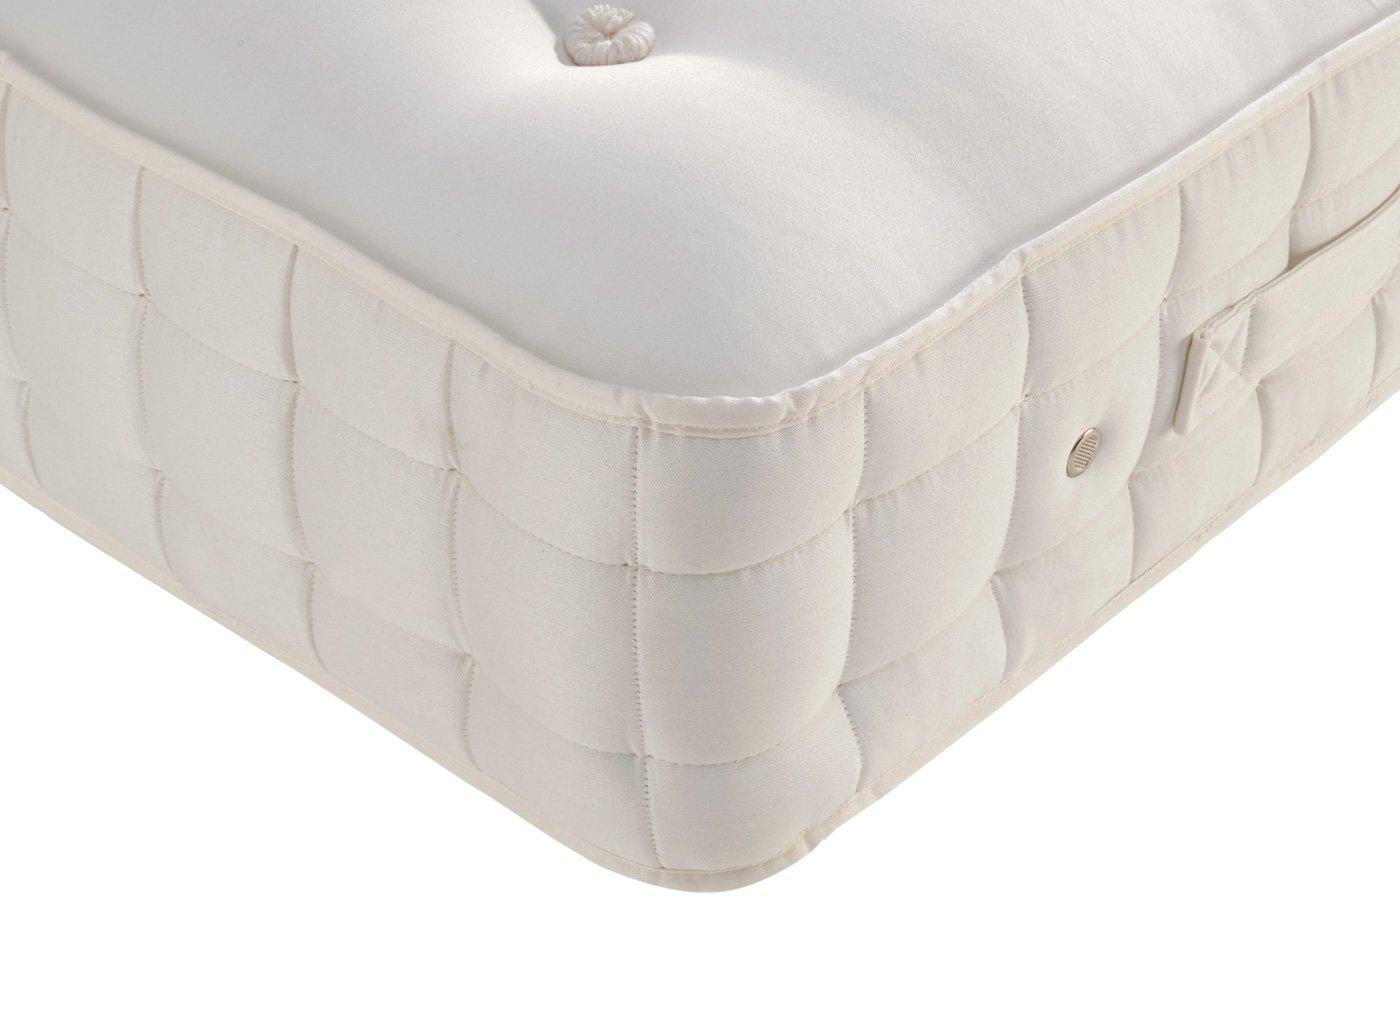 Hypnos Cohan Mattress 3'0 Single